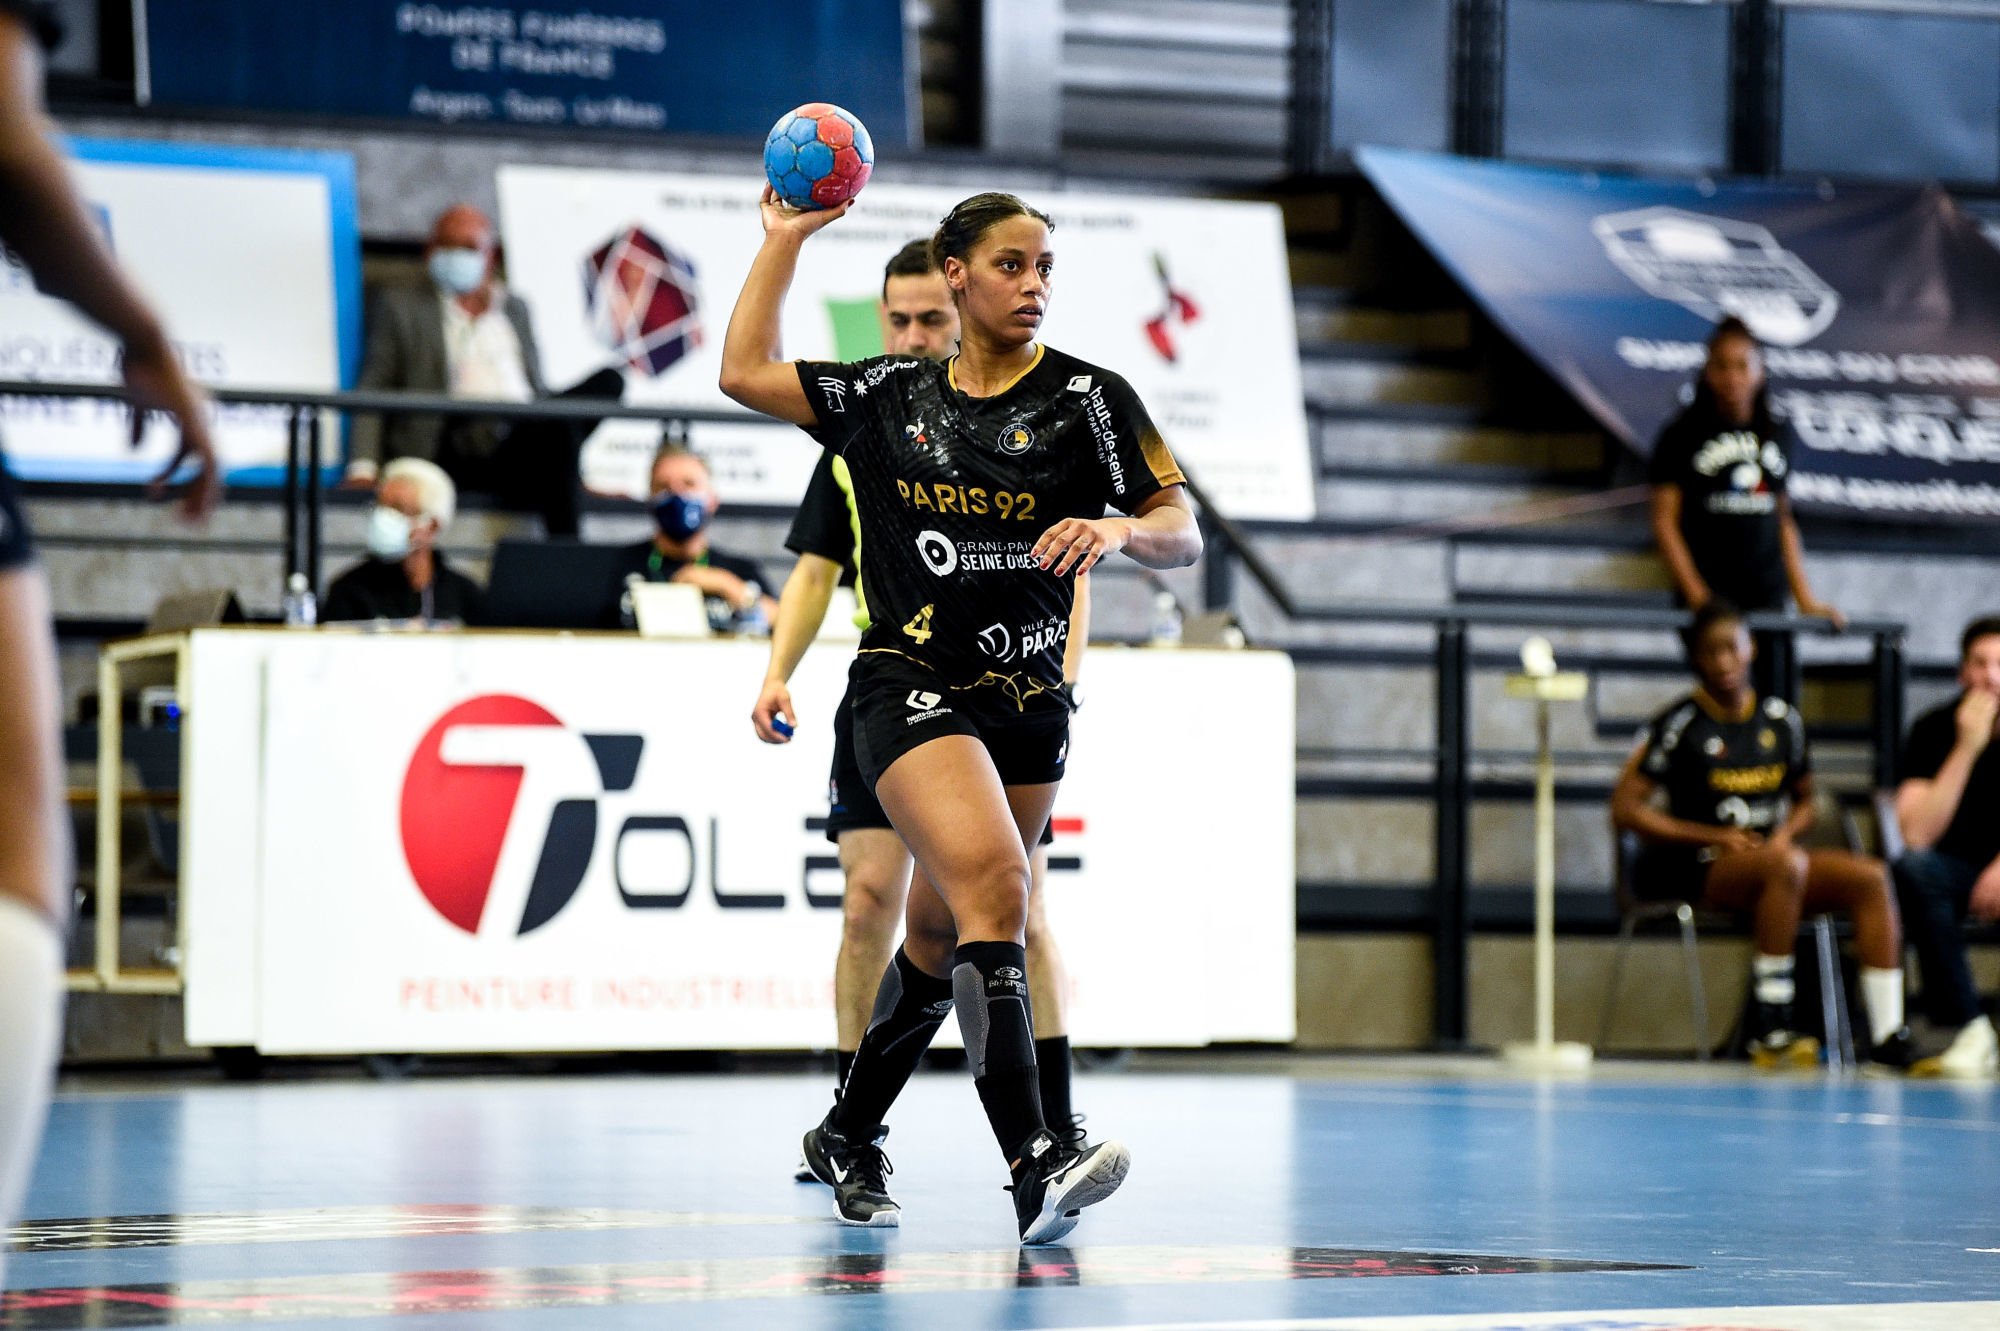 Soukeina SAGNA of Paris 92 during the Ligue Butagaz Energie match between Chambray and Paris 92 on May 8, 2021 in Chambray-les-Tours, France. (Photo by Hugo Pfeiffer/Icon Sport) - Soukeina SAGNA - Gymnase de la Fontaine Blanche - Chambray-les-Tours (France)